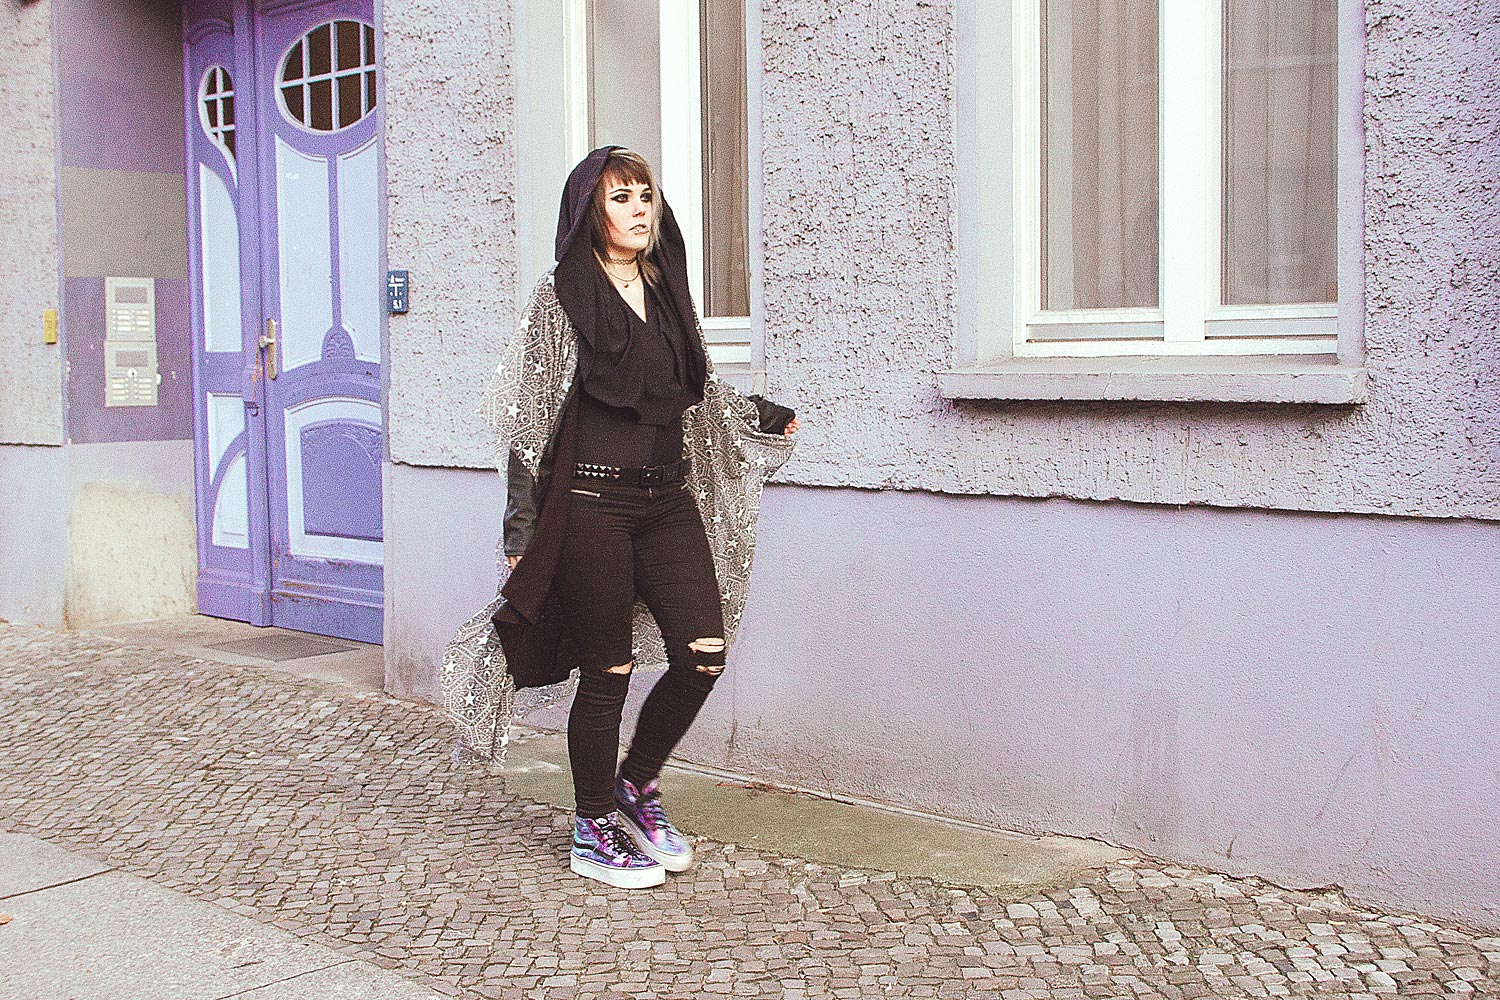 berlin, berlin fashion, berlin streetstyle, berlin fashion blogger, blogger, fashion blogger, punk, grunge, punk fashion, grunge fashion, alternative, alternative fashion, alternative girl, altgirl, snakebites, girls with piercings, scenehair, mode, alternative mode, punk mode, grunge mode, split hair, splithair, girls with tattoos, tattoomädchen, tattoomodel, black milk, black milk clothing, hooded bodysuit, suit, hodded matte, planet, ringe, silber, druzy dreams, moon, mond, mondstein, regenbogen mondstein, disturbia, regalrose, onyx, schmuckstein, killstar, stargazer, jeans, ripped jeans, usedlook, used, knee slit, vans, plateau, plateau sneakers, galaxy, h&m, strick, cardigan, kunstleder, leder, stargazer mesh cape, witchy, padawan, dark padawan, modern padawan